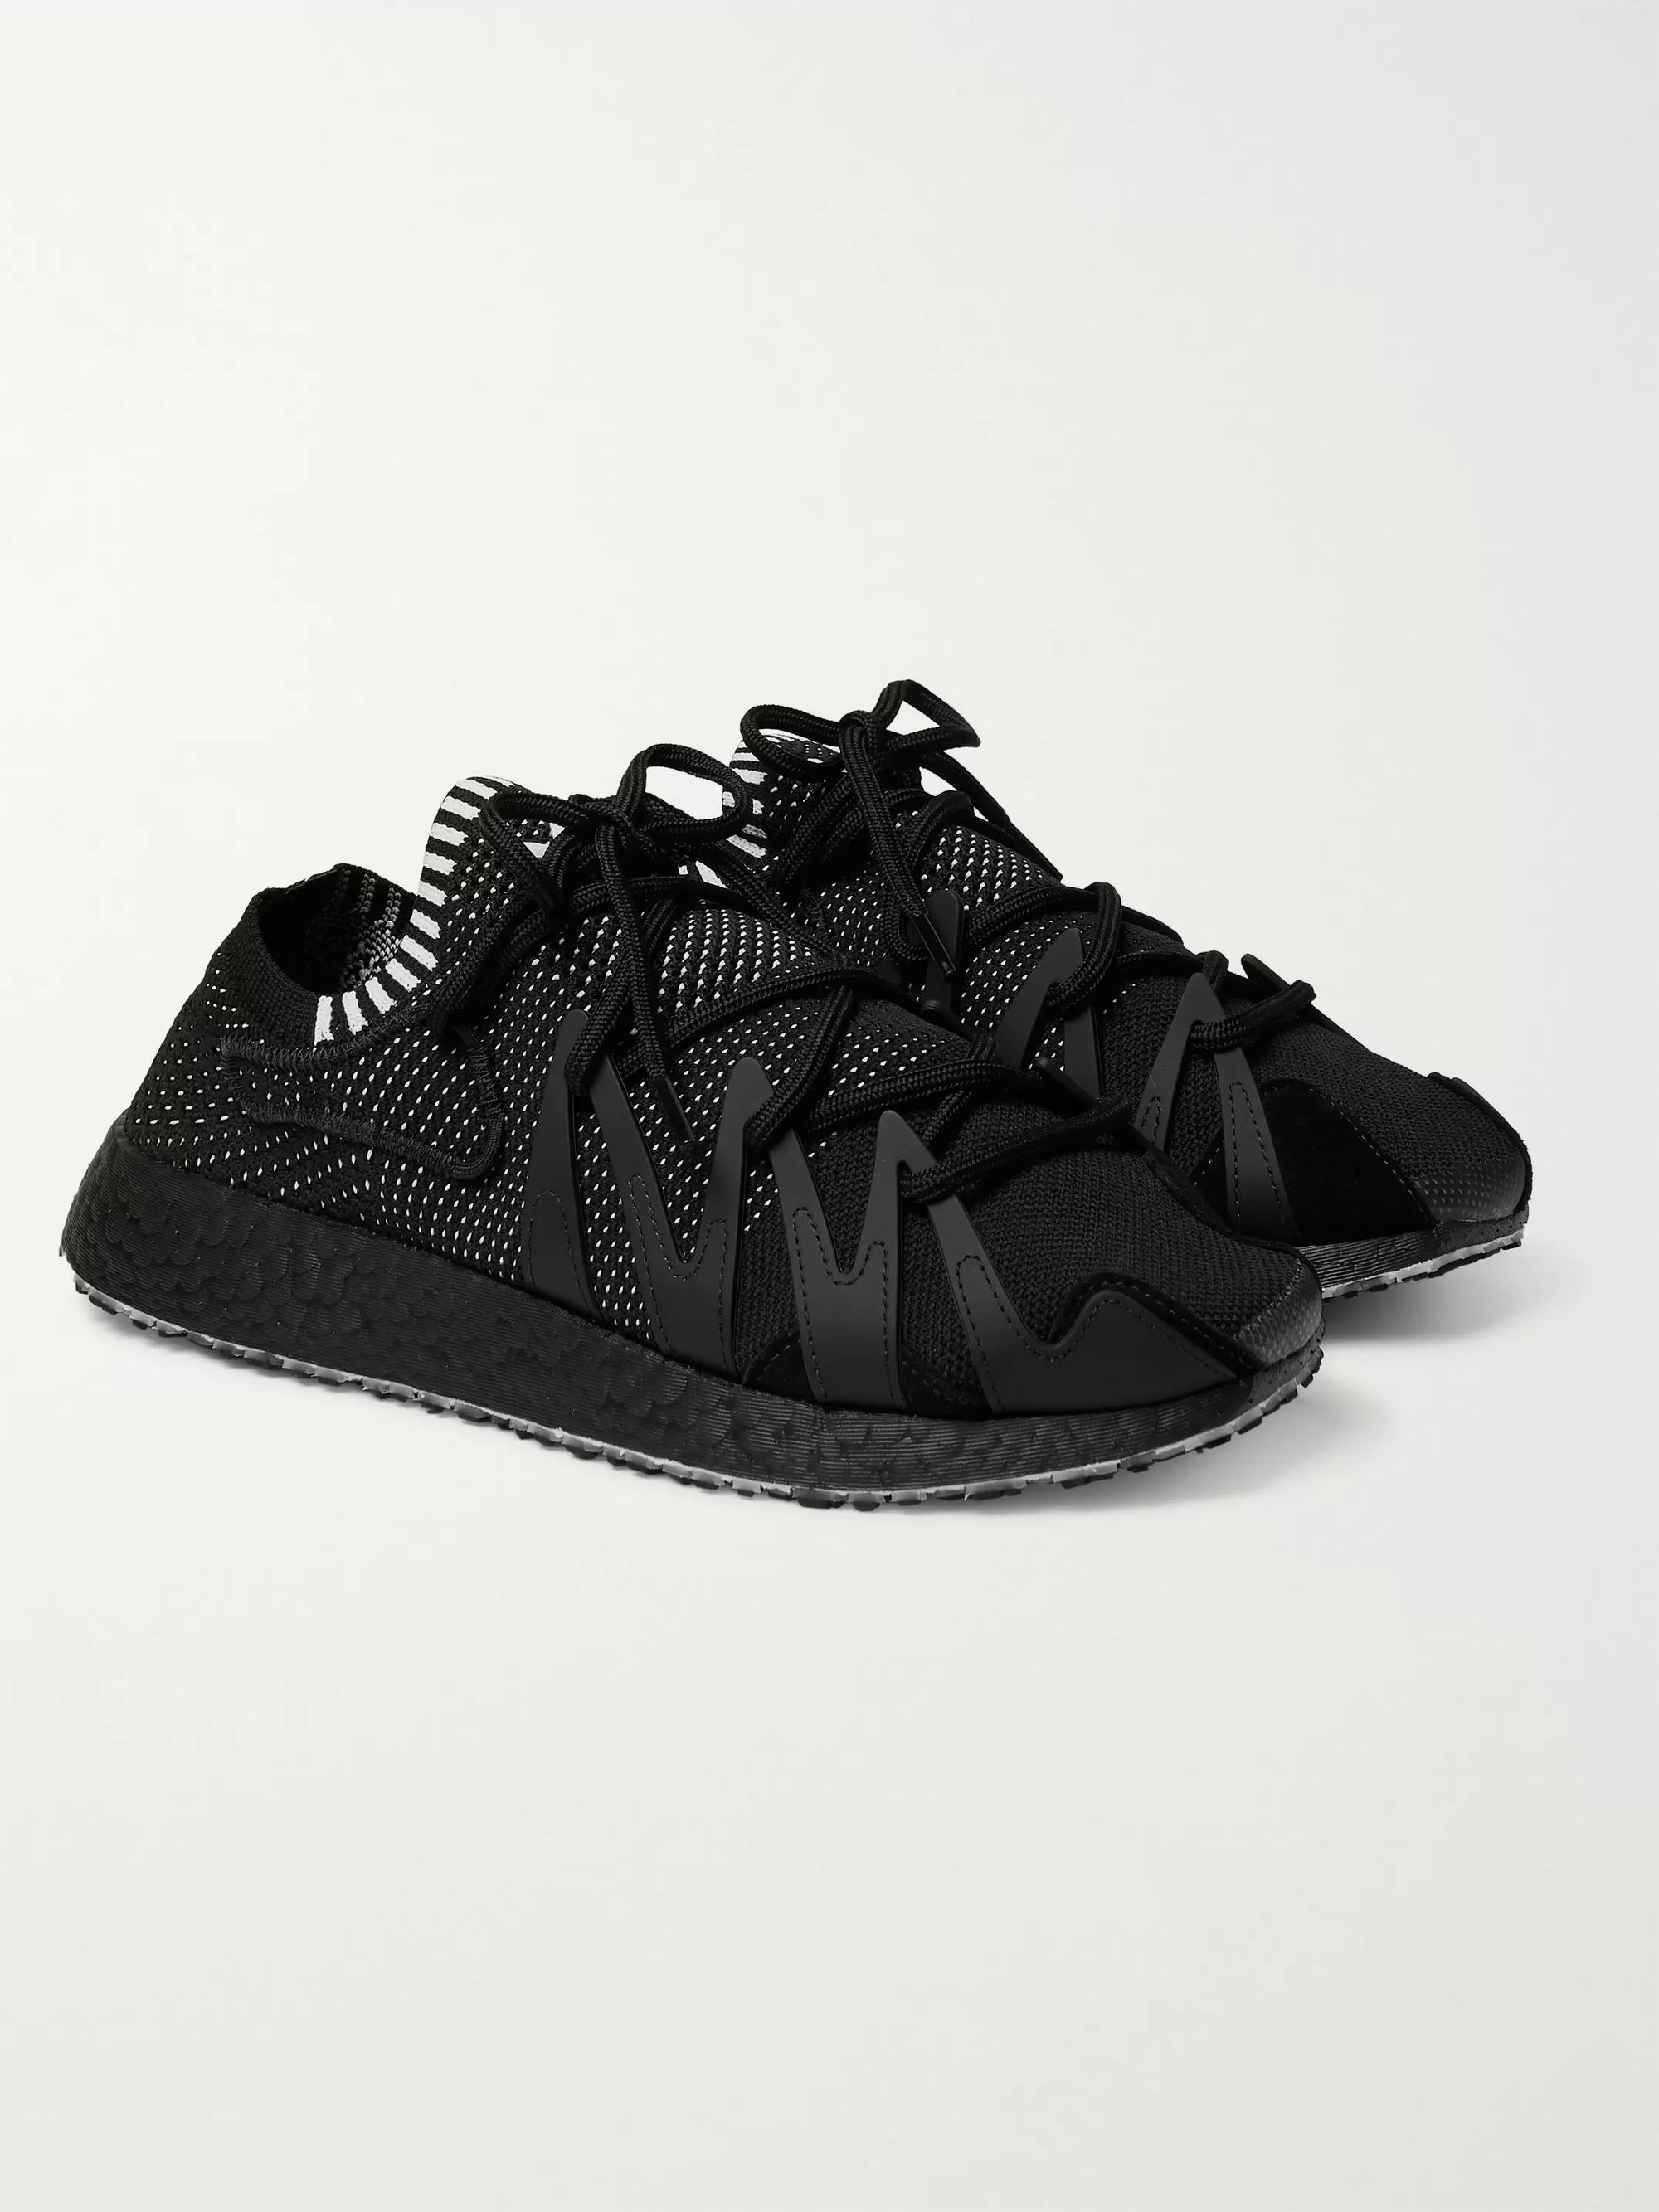 Y-3 Y-3 Raito Racer Rubber and Suede-Trimmed Primeknit Sneakers